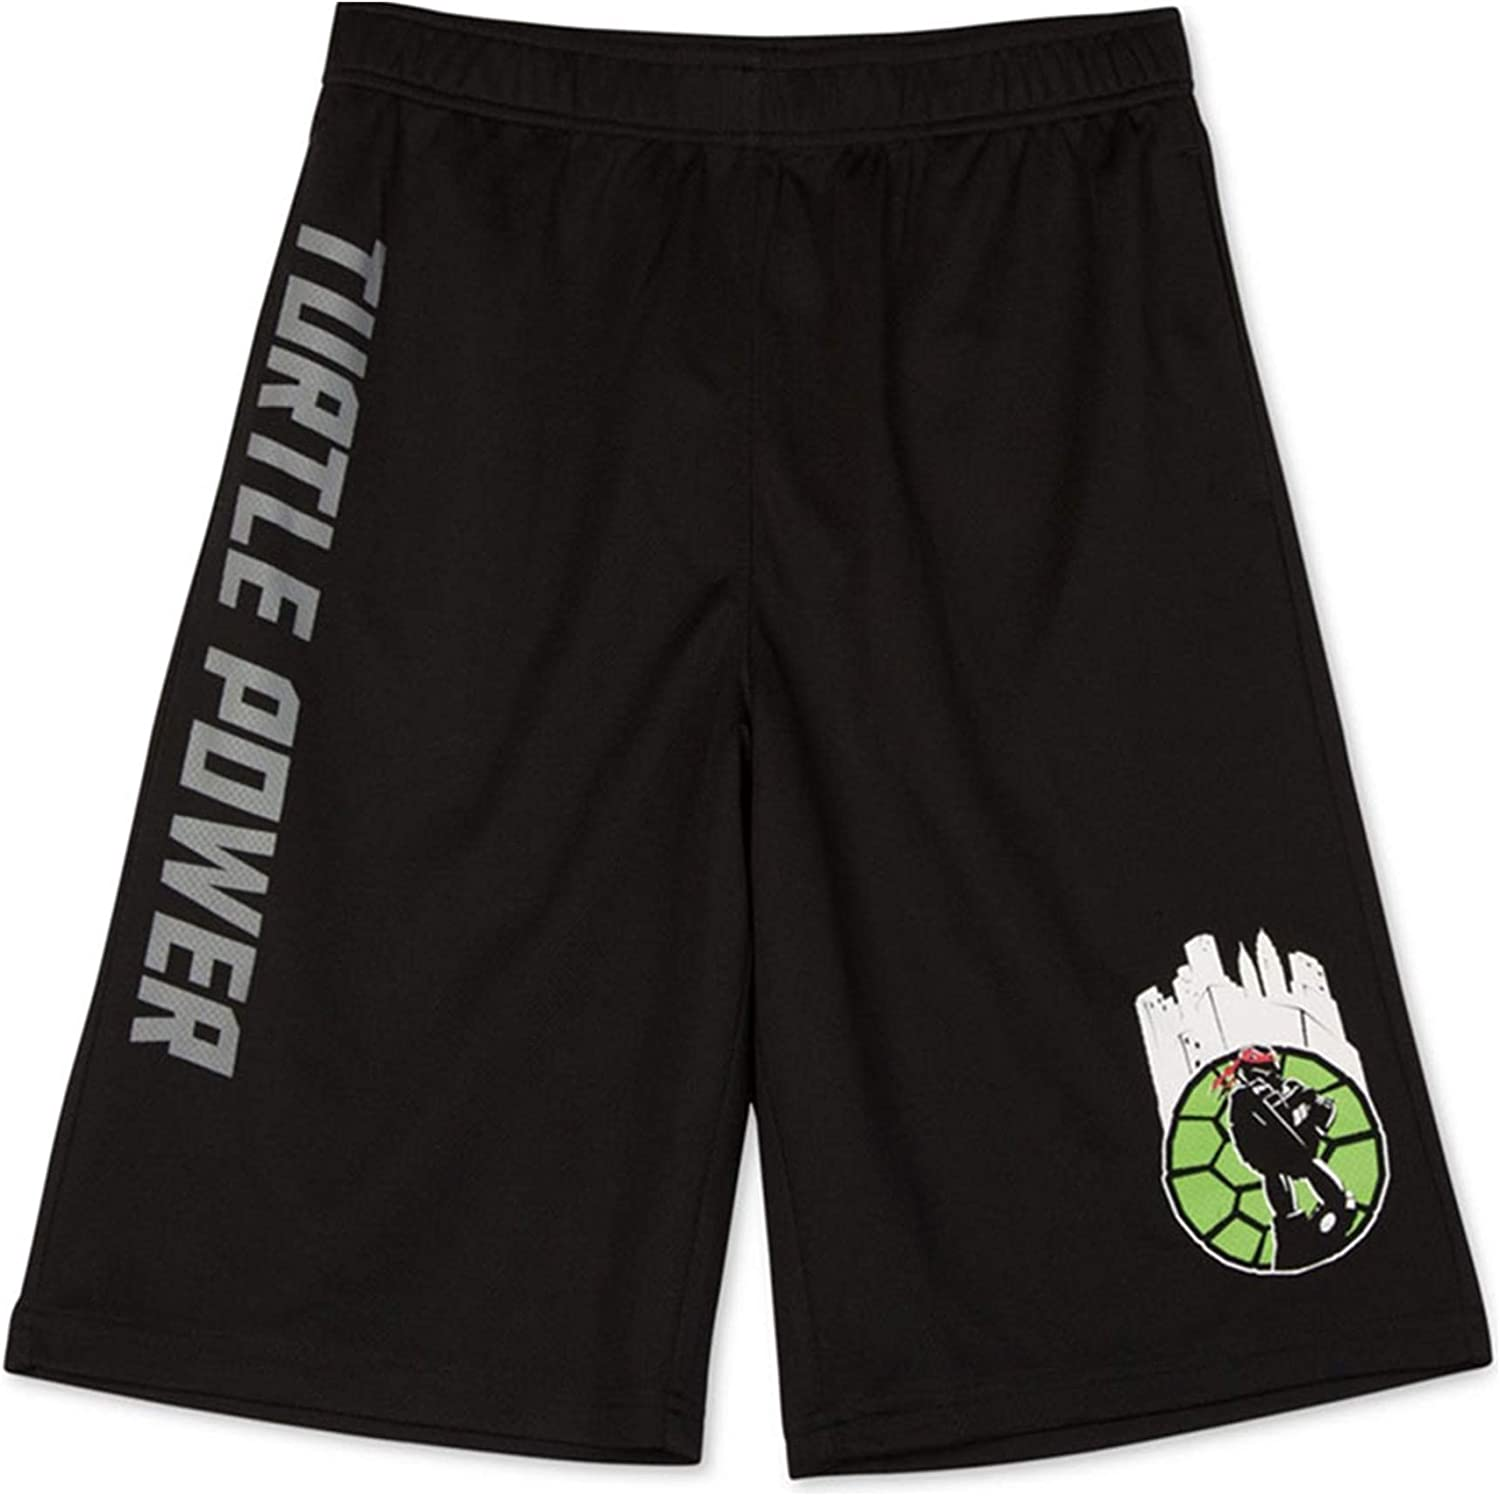 Nickelodeon Boys TMNT Turtle Power Athletic Workout Shorts, Black, M (12)